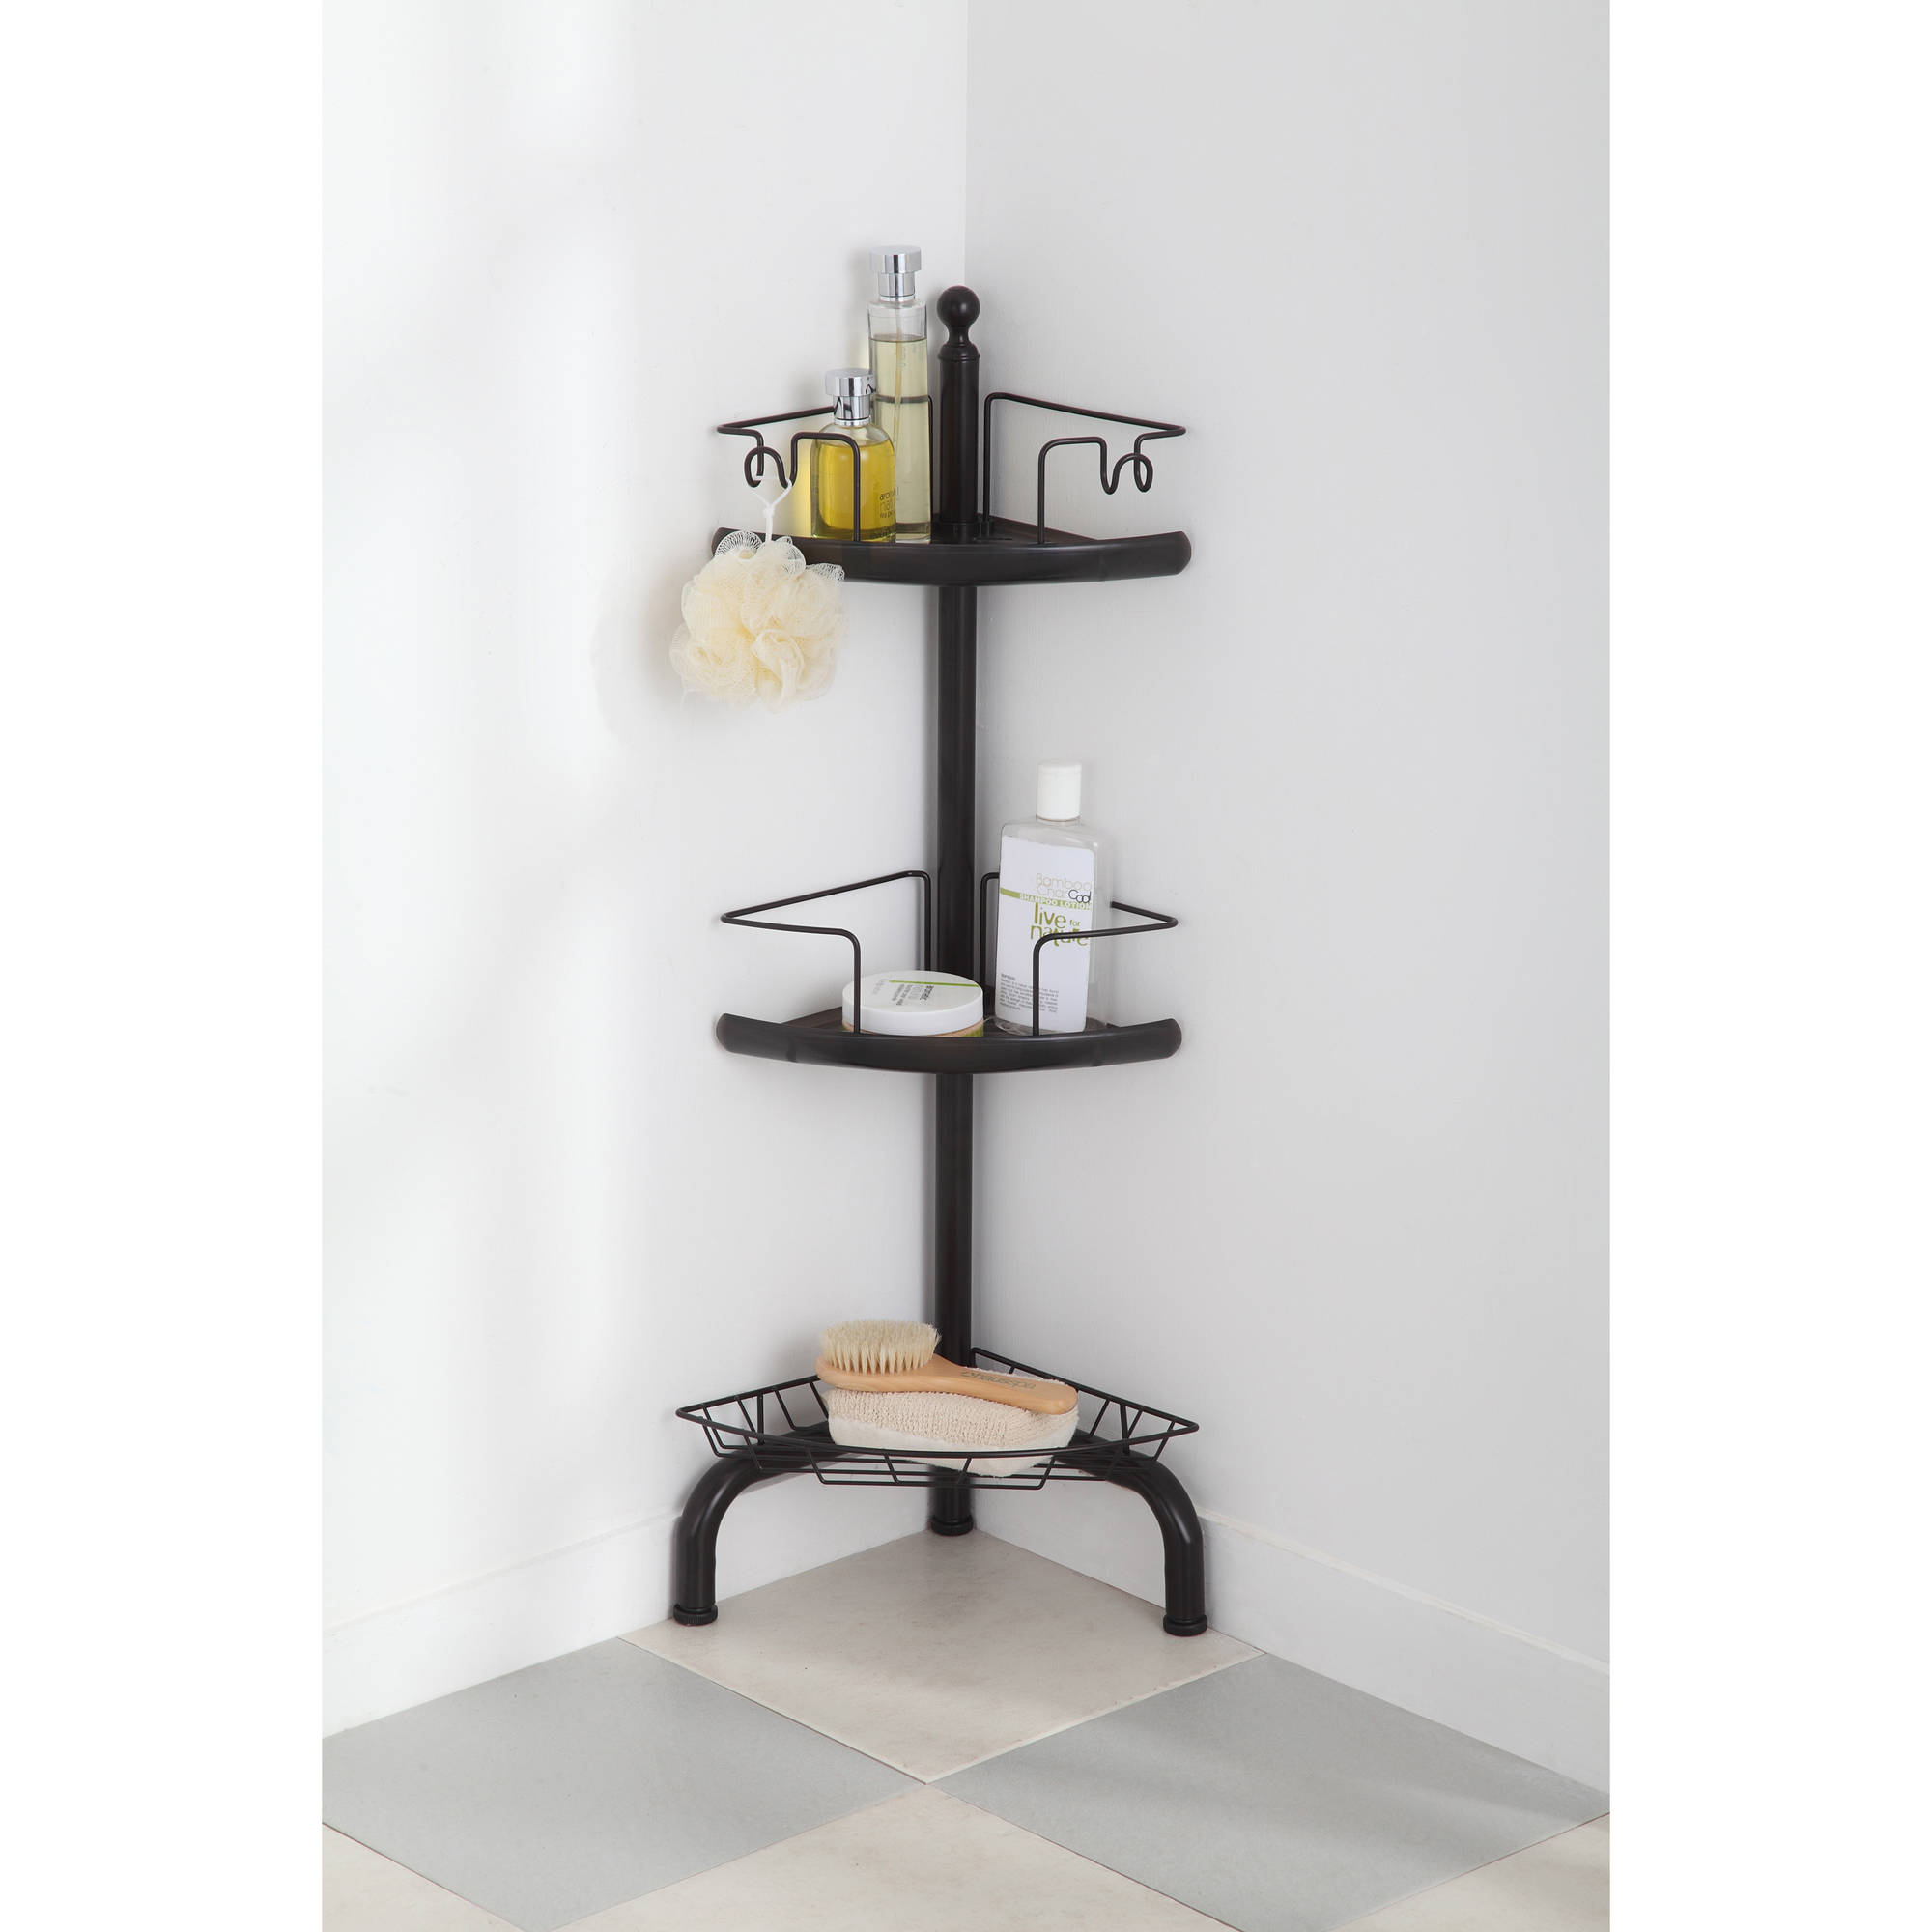 Charmant HomeZone 3 Tier Adjustable Corner Shower Caddy, Oil Rubbed Bronze